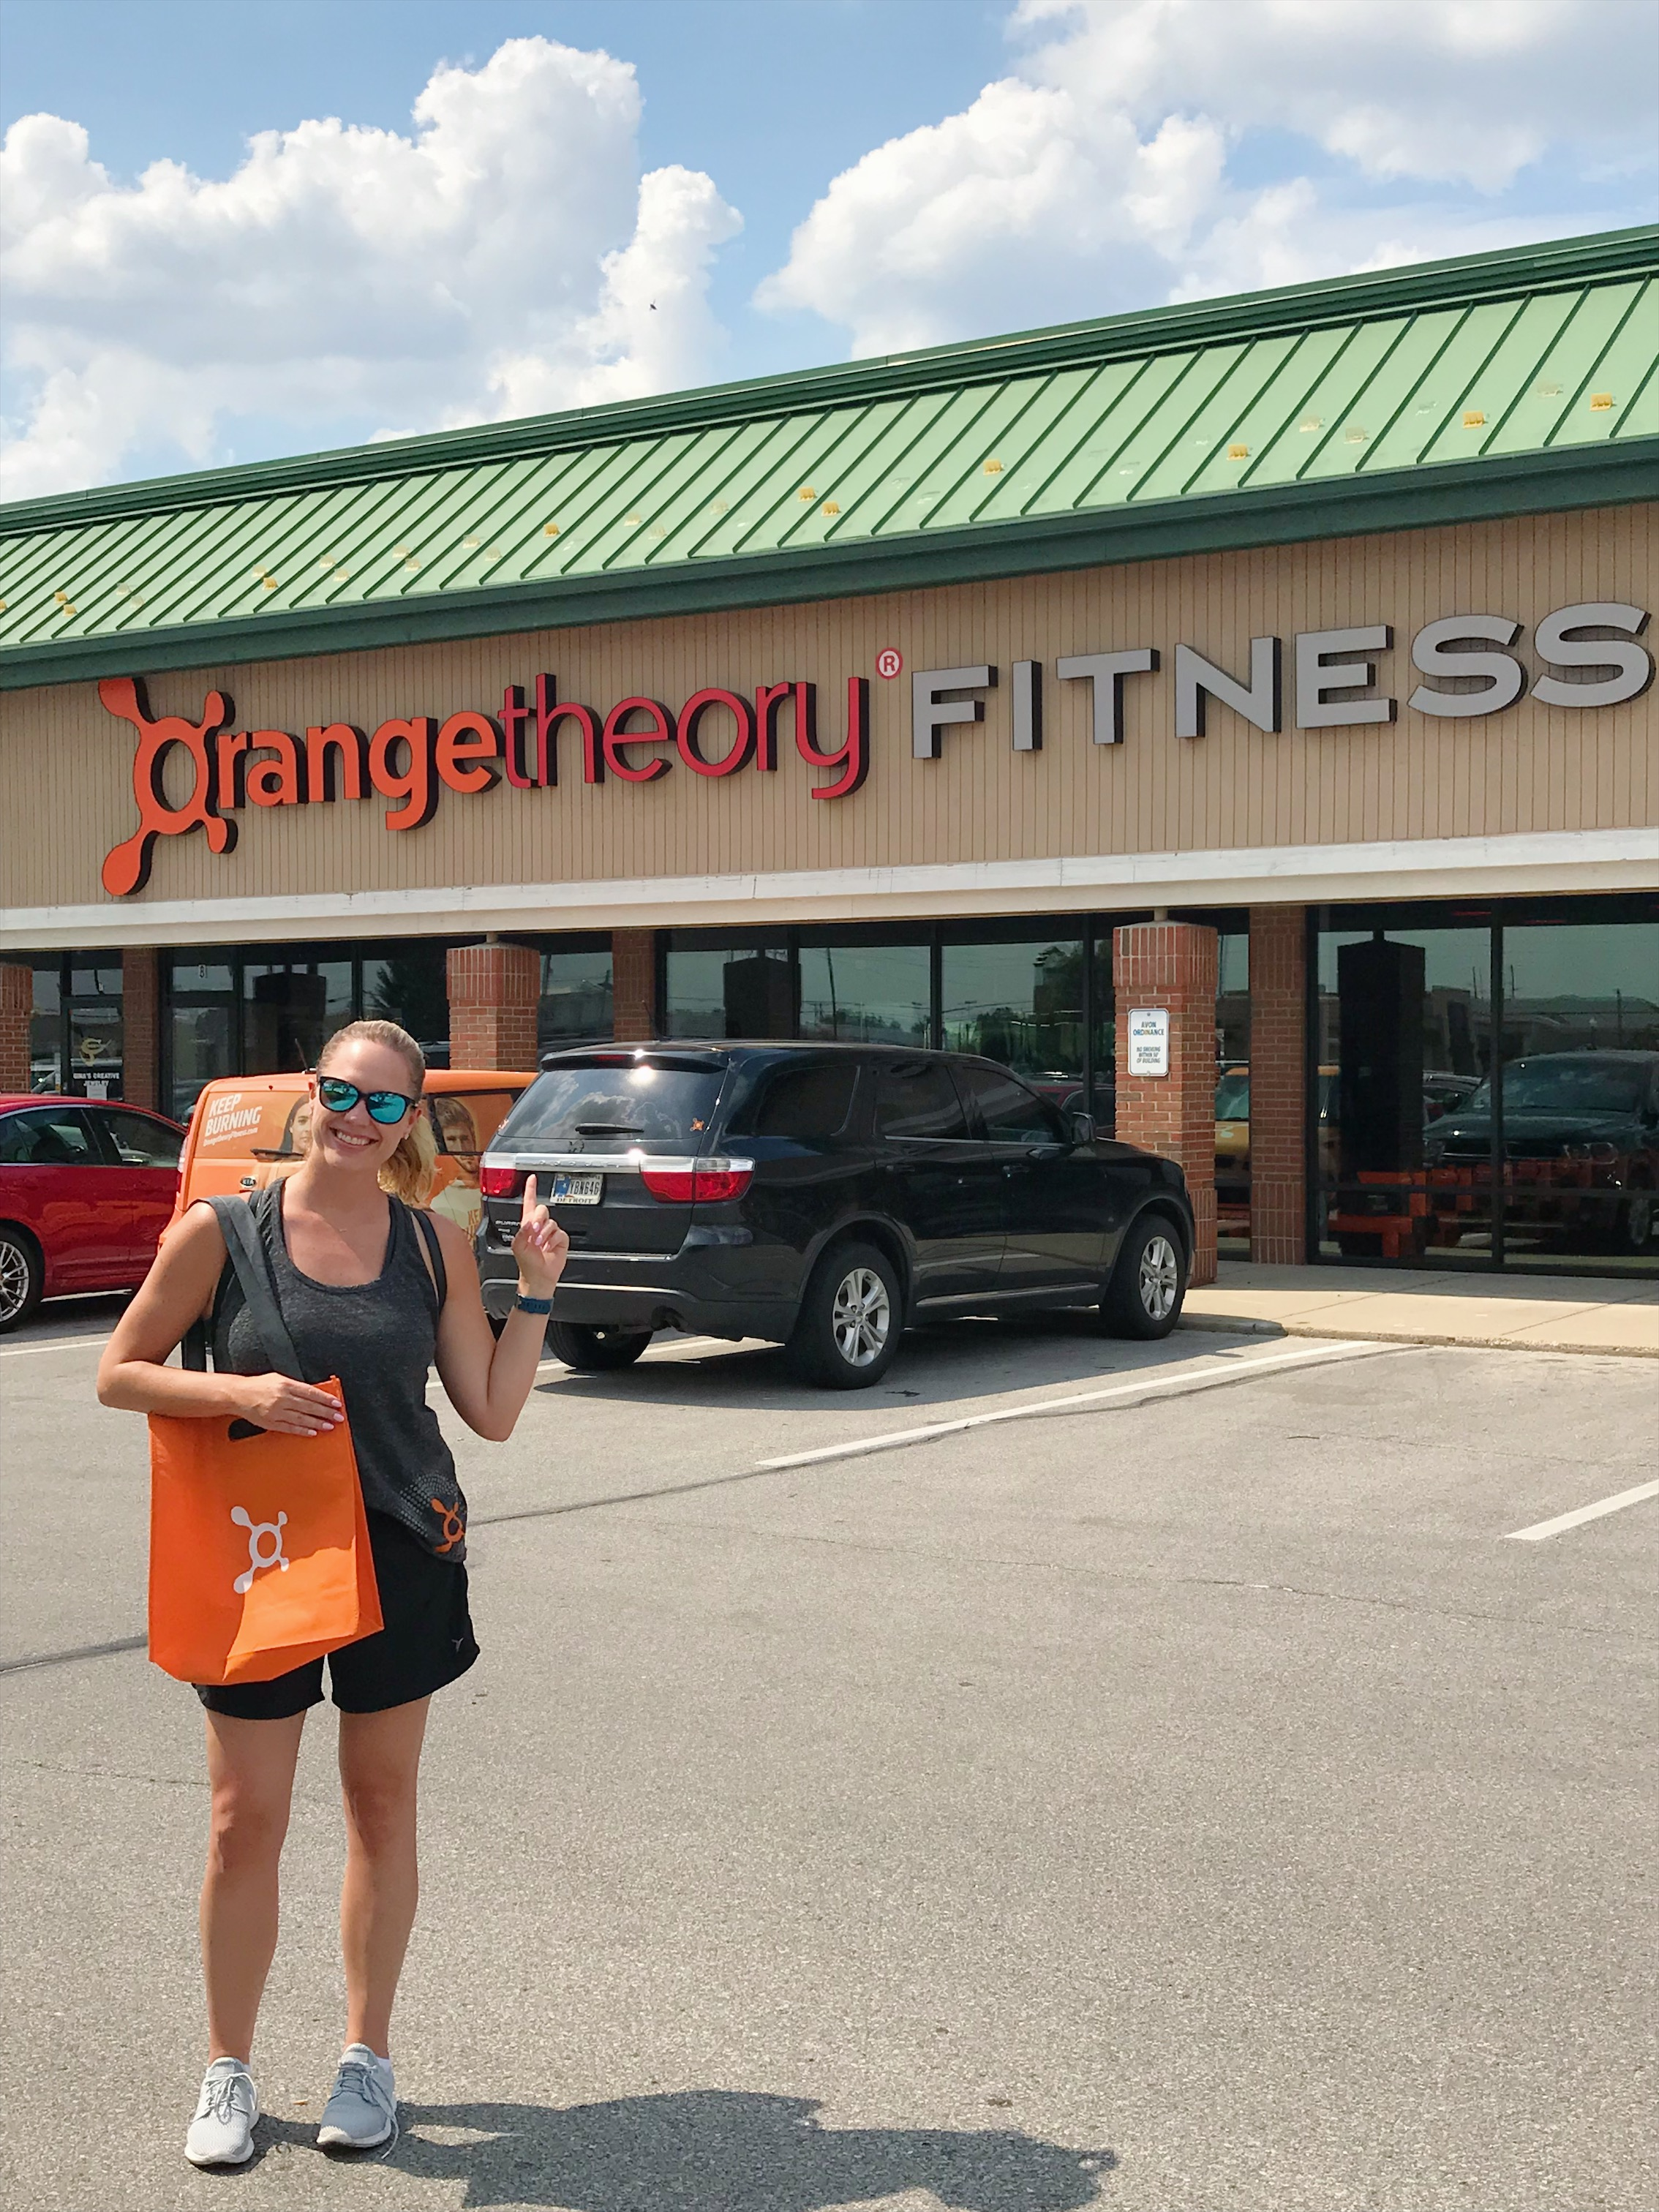 new orange theory